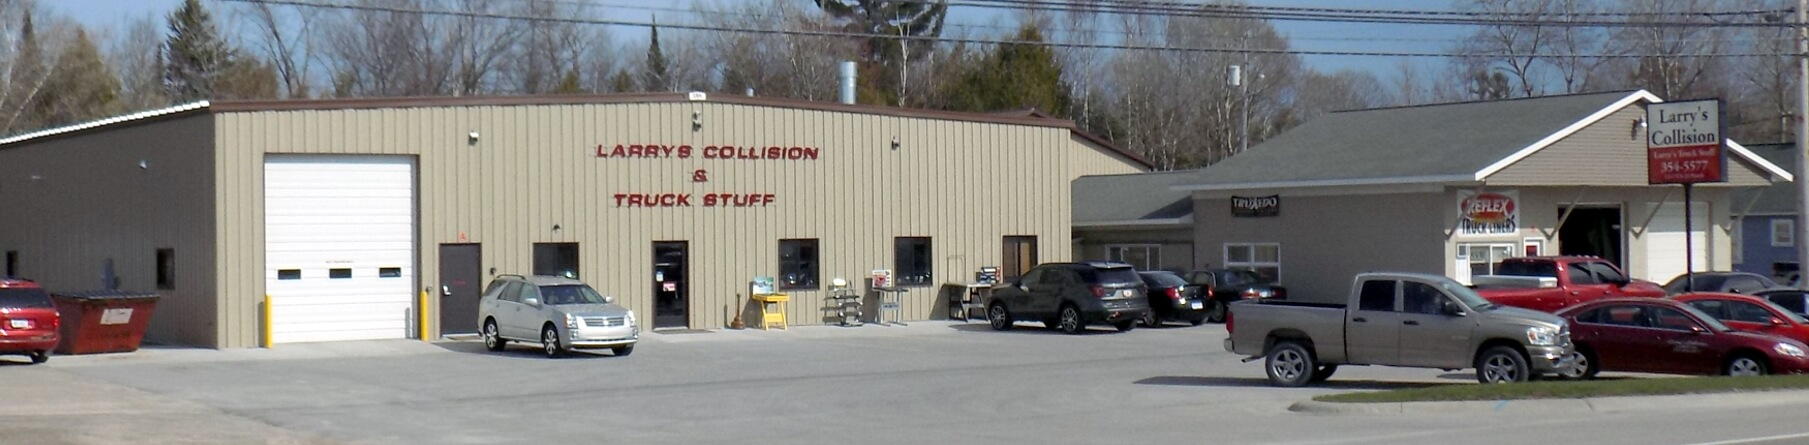 Larry's Collision and Truck Stuff, 1212 U.S. 23 North, Alpena, MI